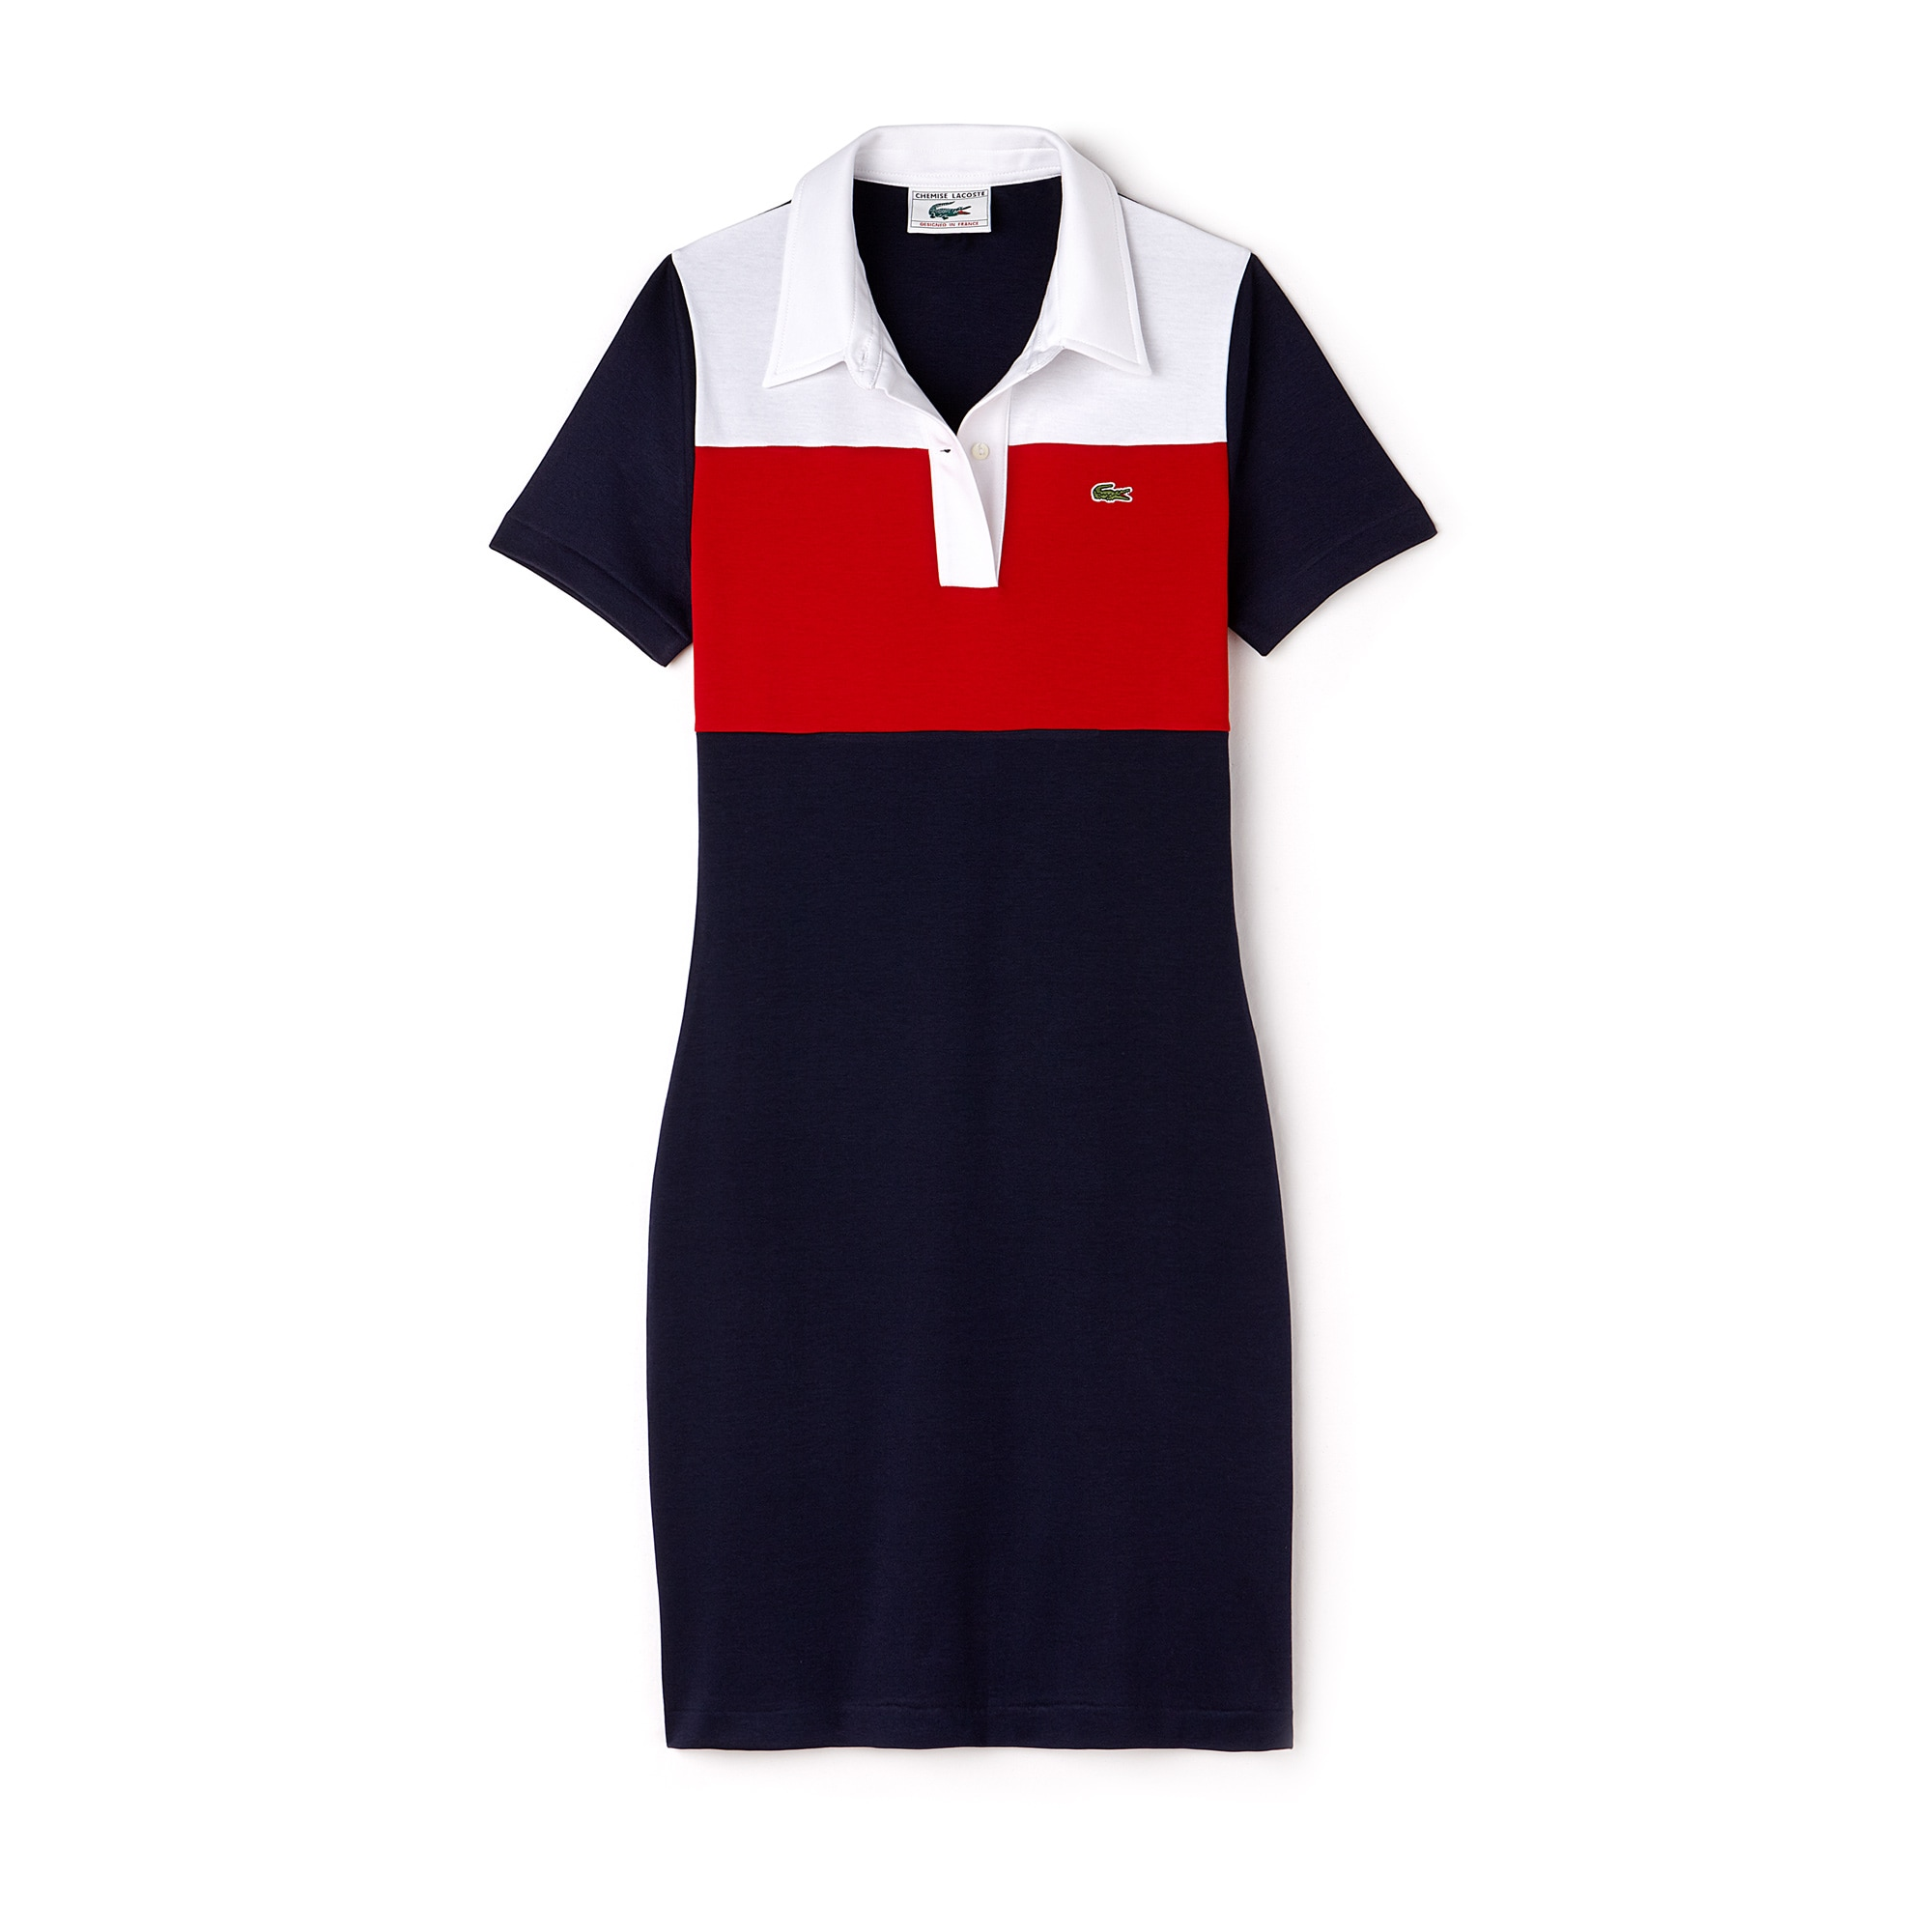 Women's 85th Anniversary Limited Edition Polo Dress